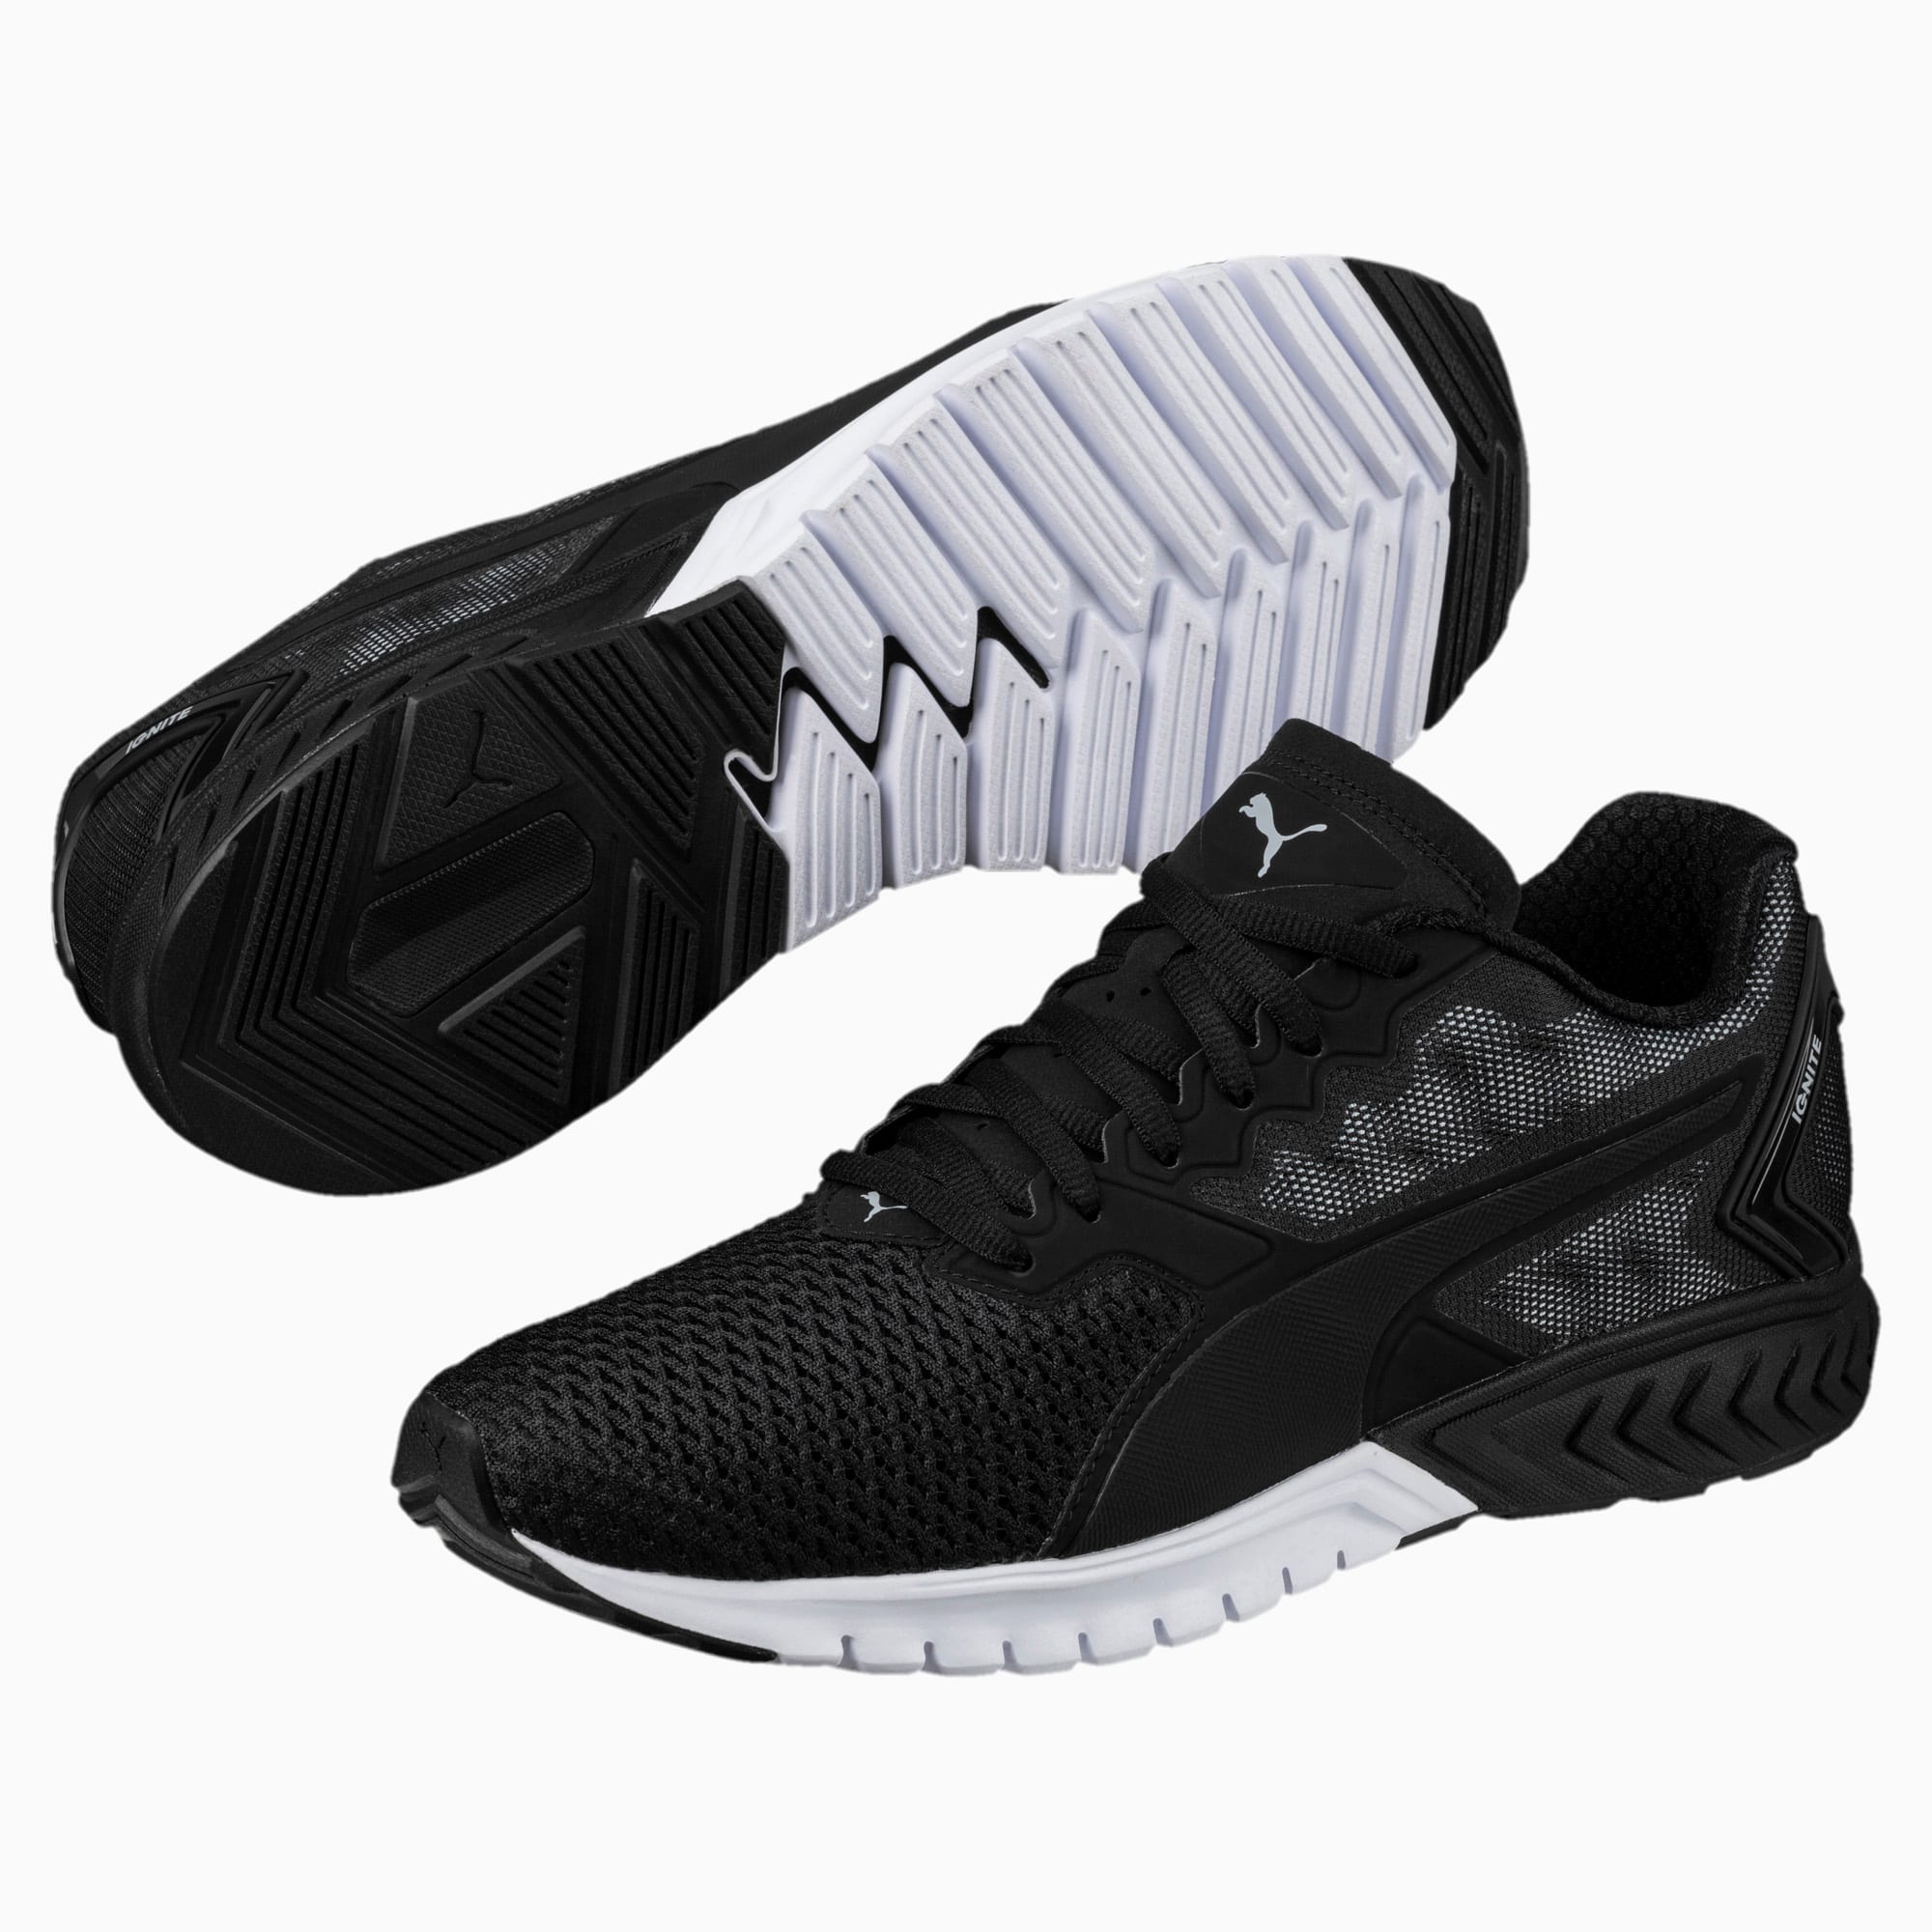 IGNITE Dual Mesh Men's Running Shoes